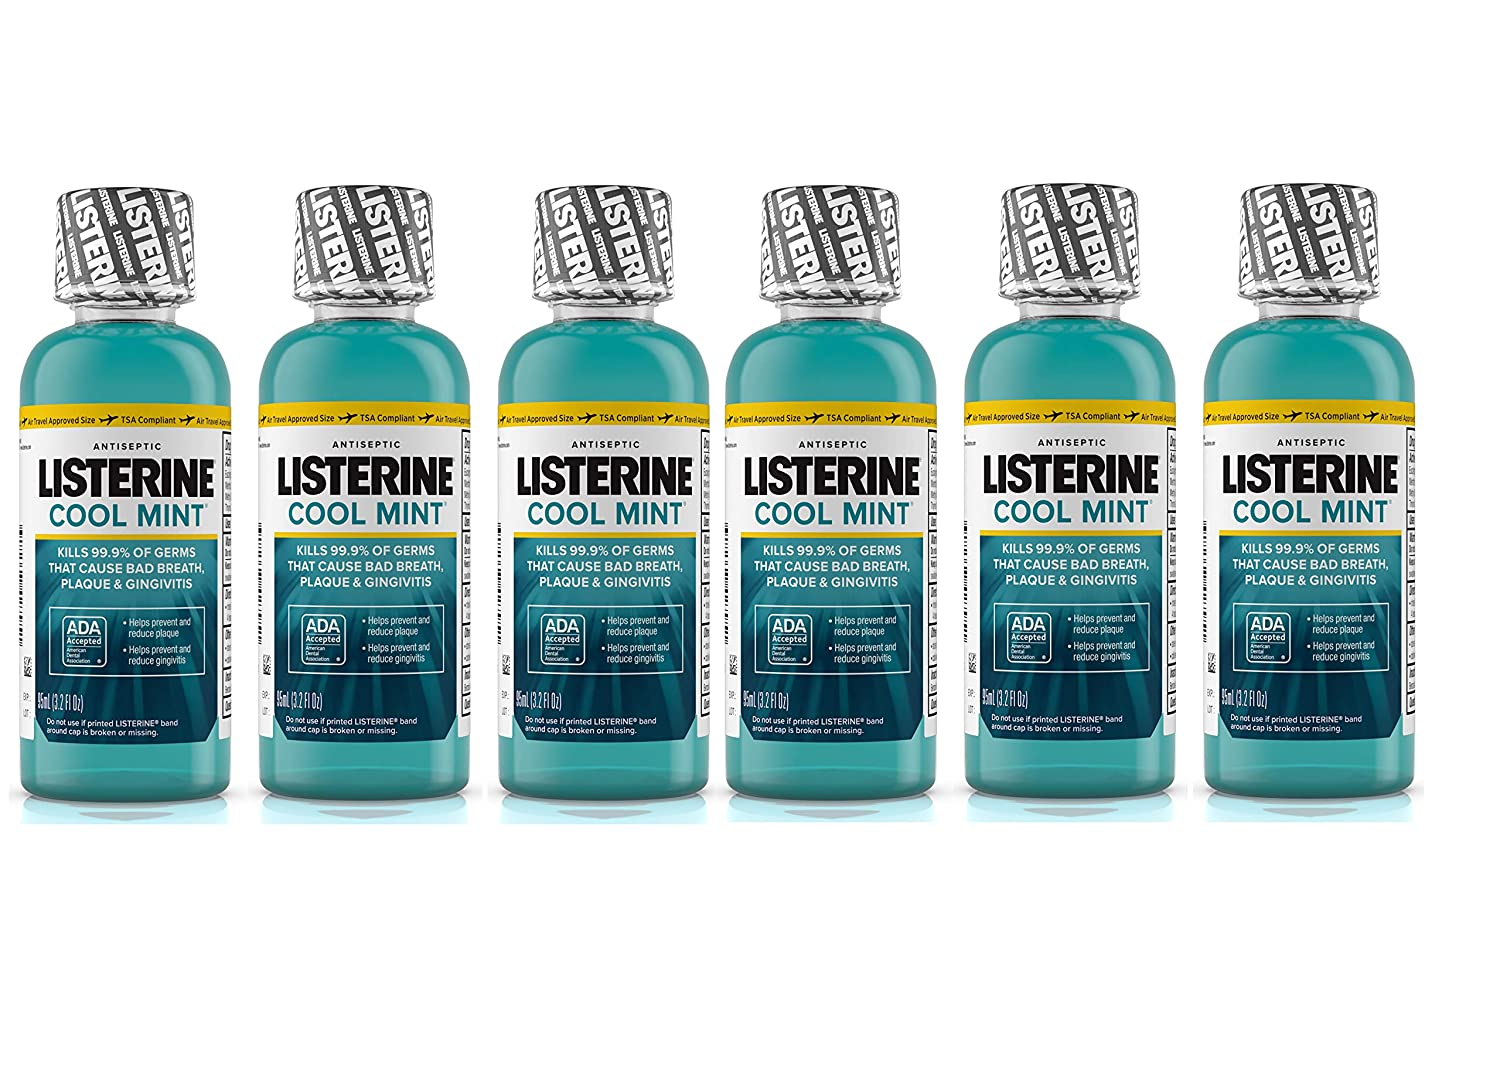 Listerine Cool Mint Antiseptic Mouthwash for Bad Breath, Travel Size 3.2 oz - Pack of 6